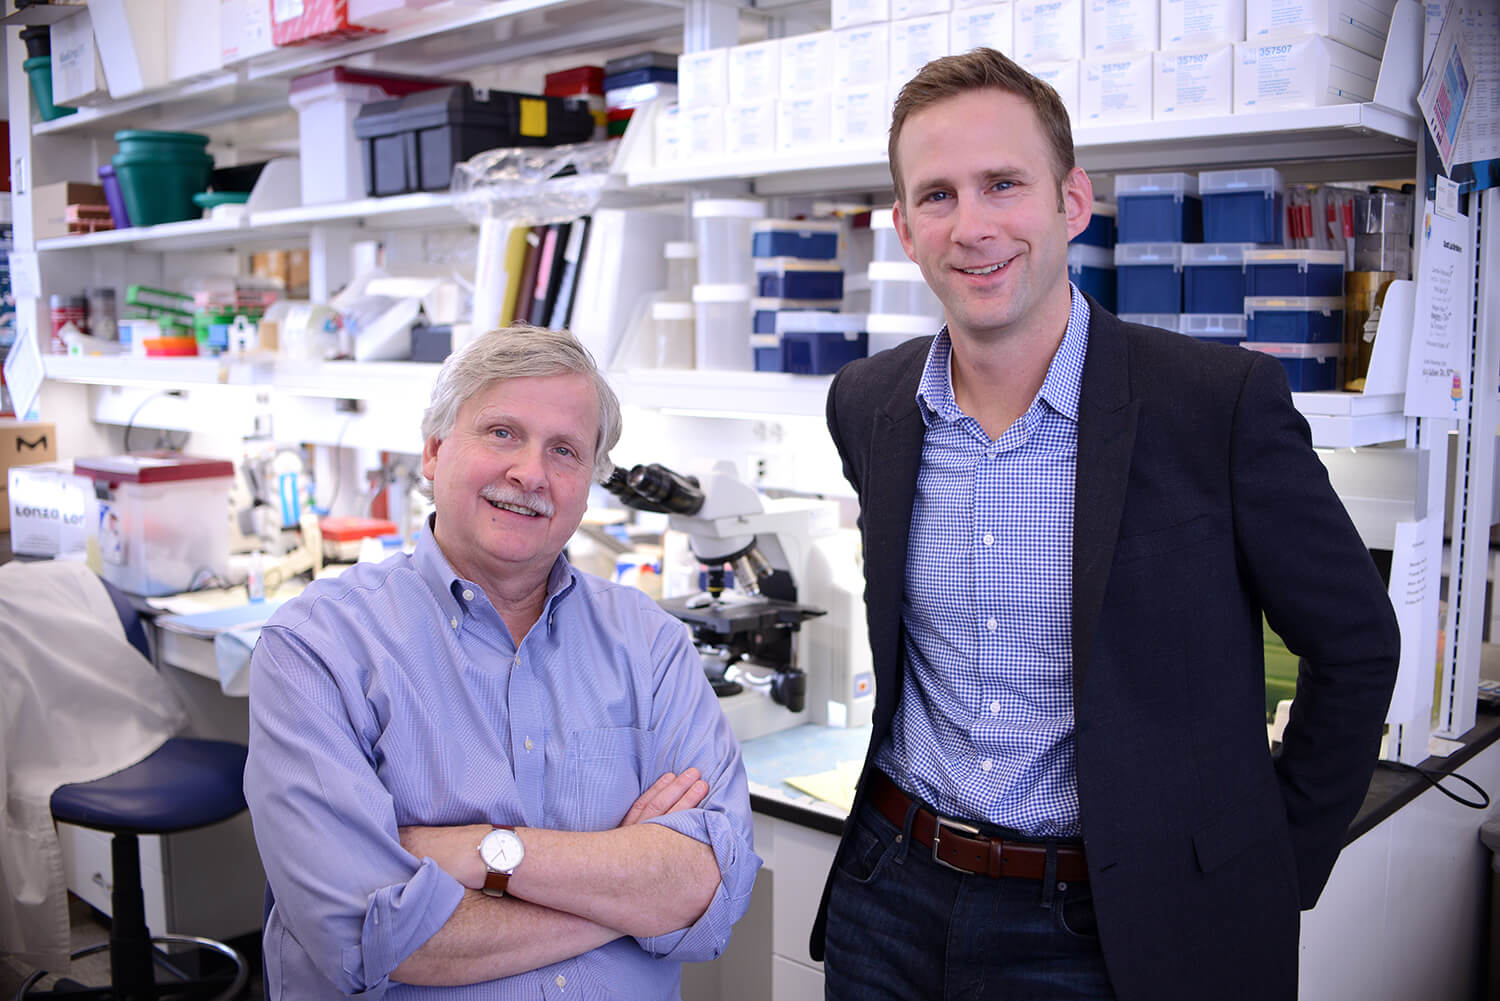 Phillip Scott and Daniel Beiting have collaborated for years on leishmaniasis, employing cutting-edge